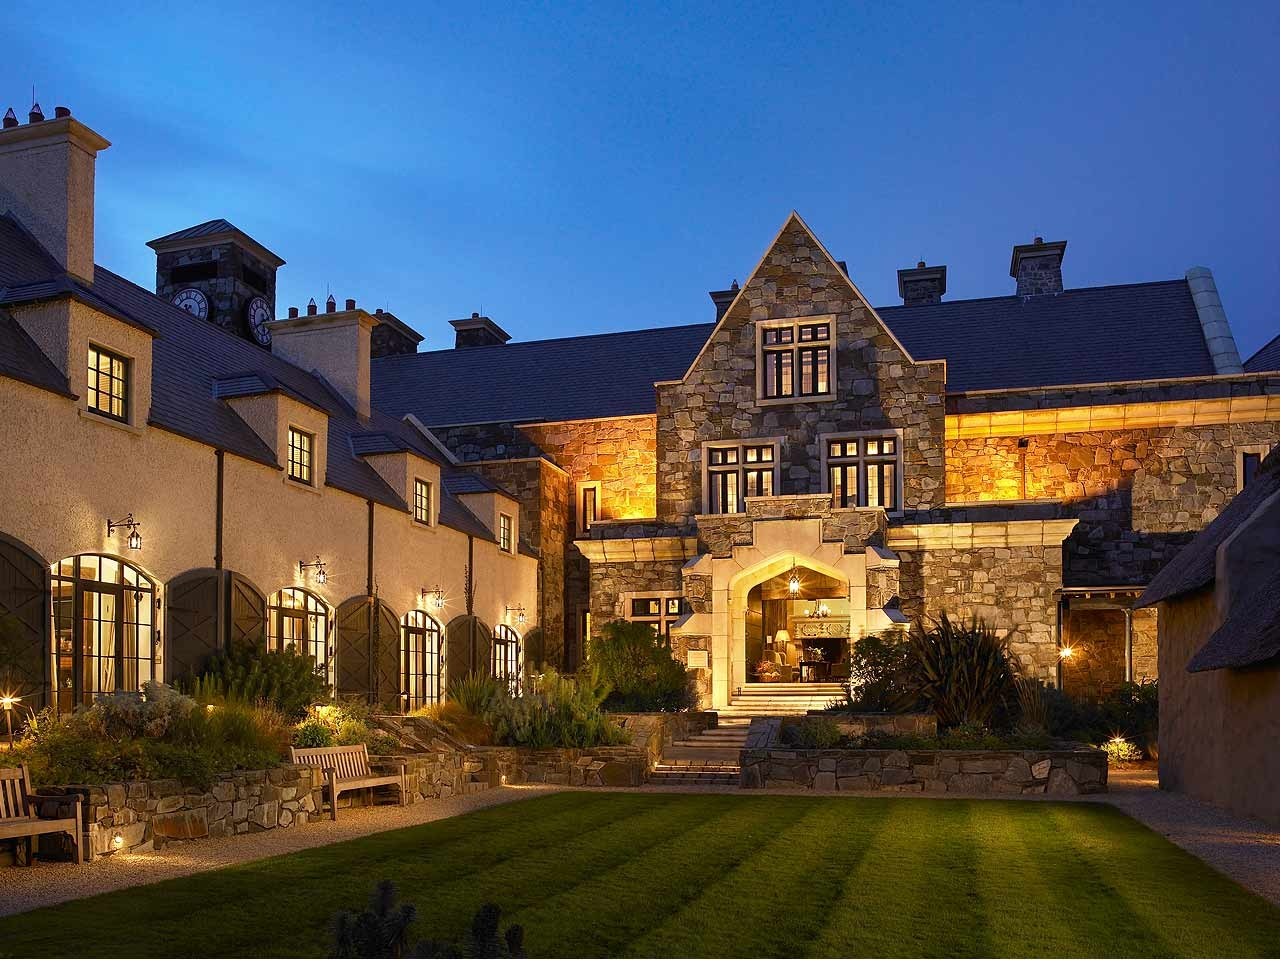 Doonbeg Lodge